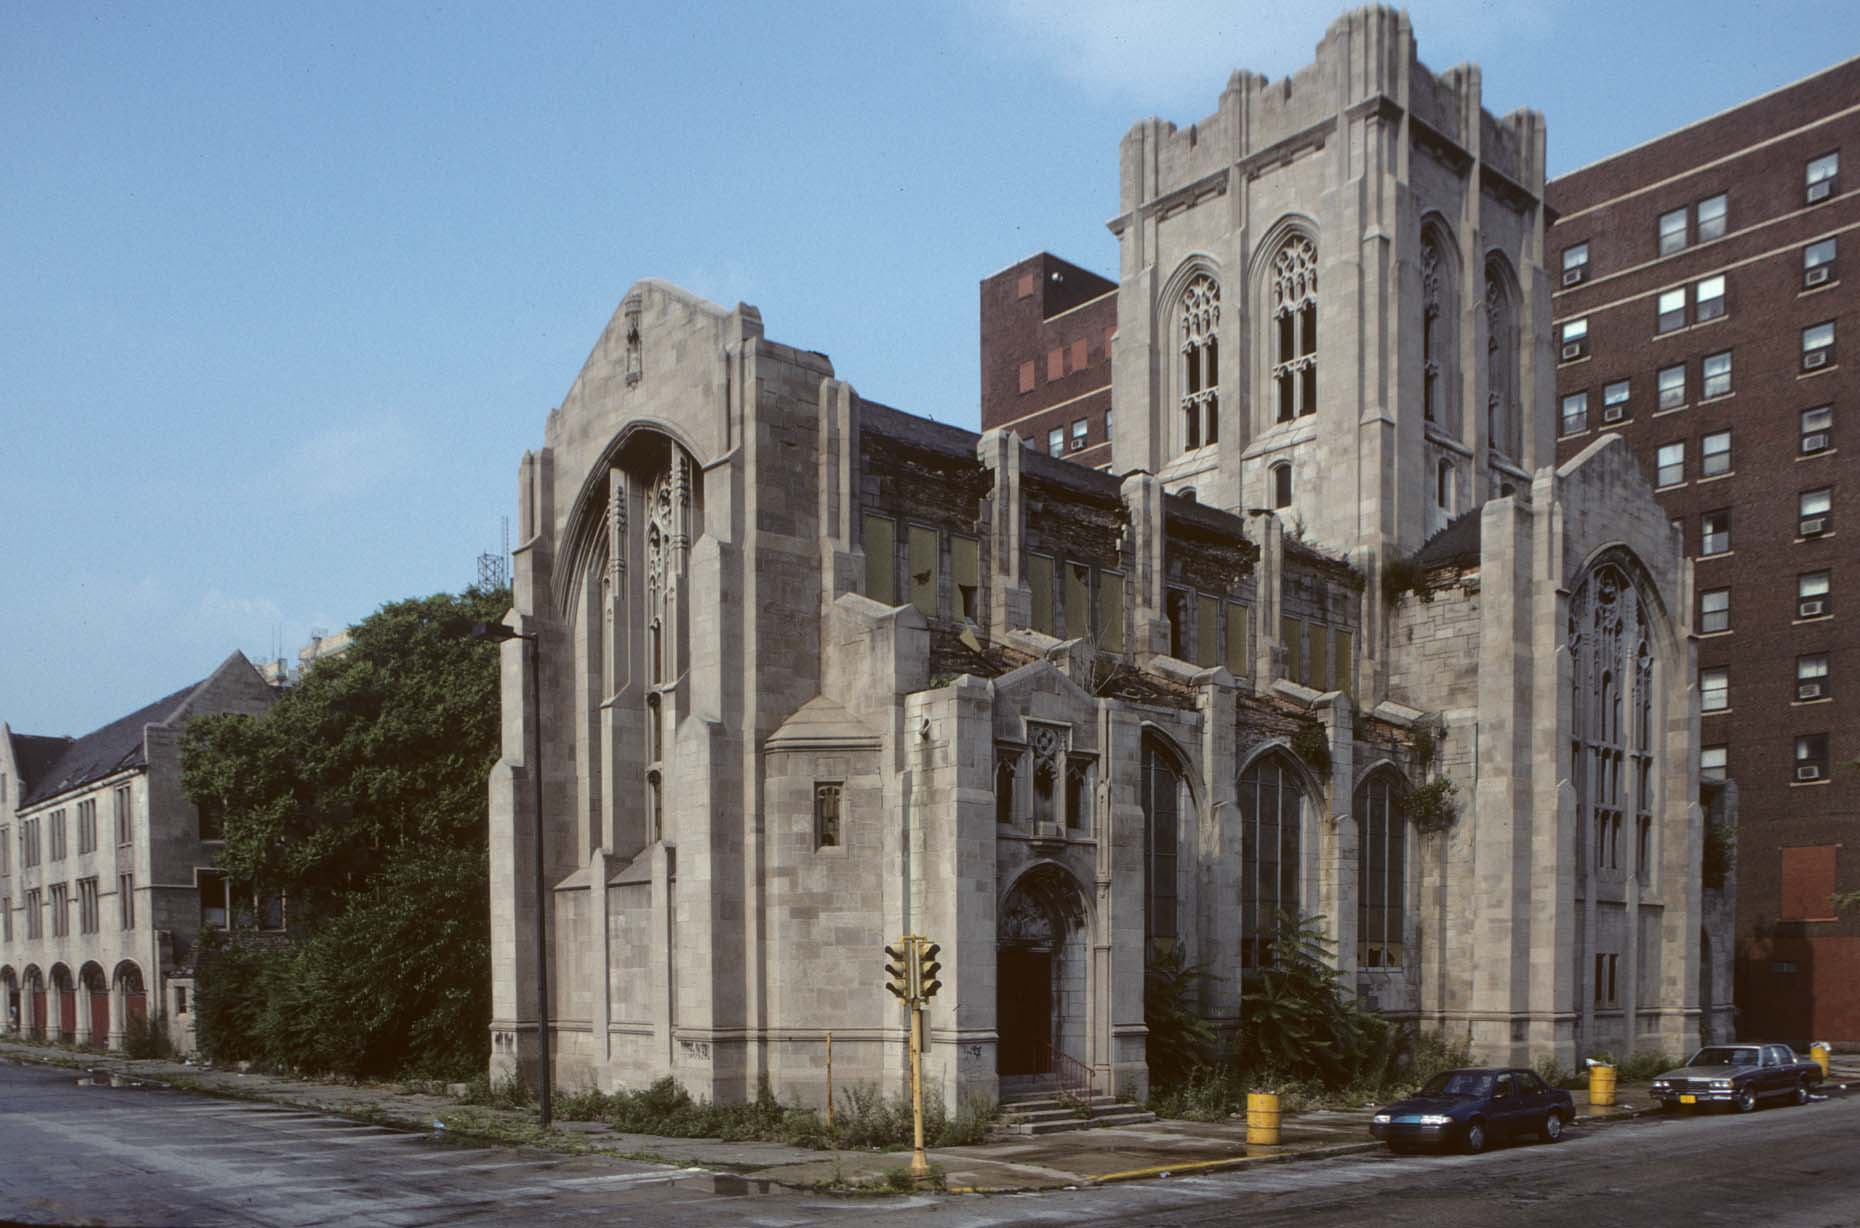 13_City Methodist Church, 6th Ave. at Washington St., 1995_.jpg